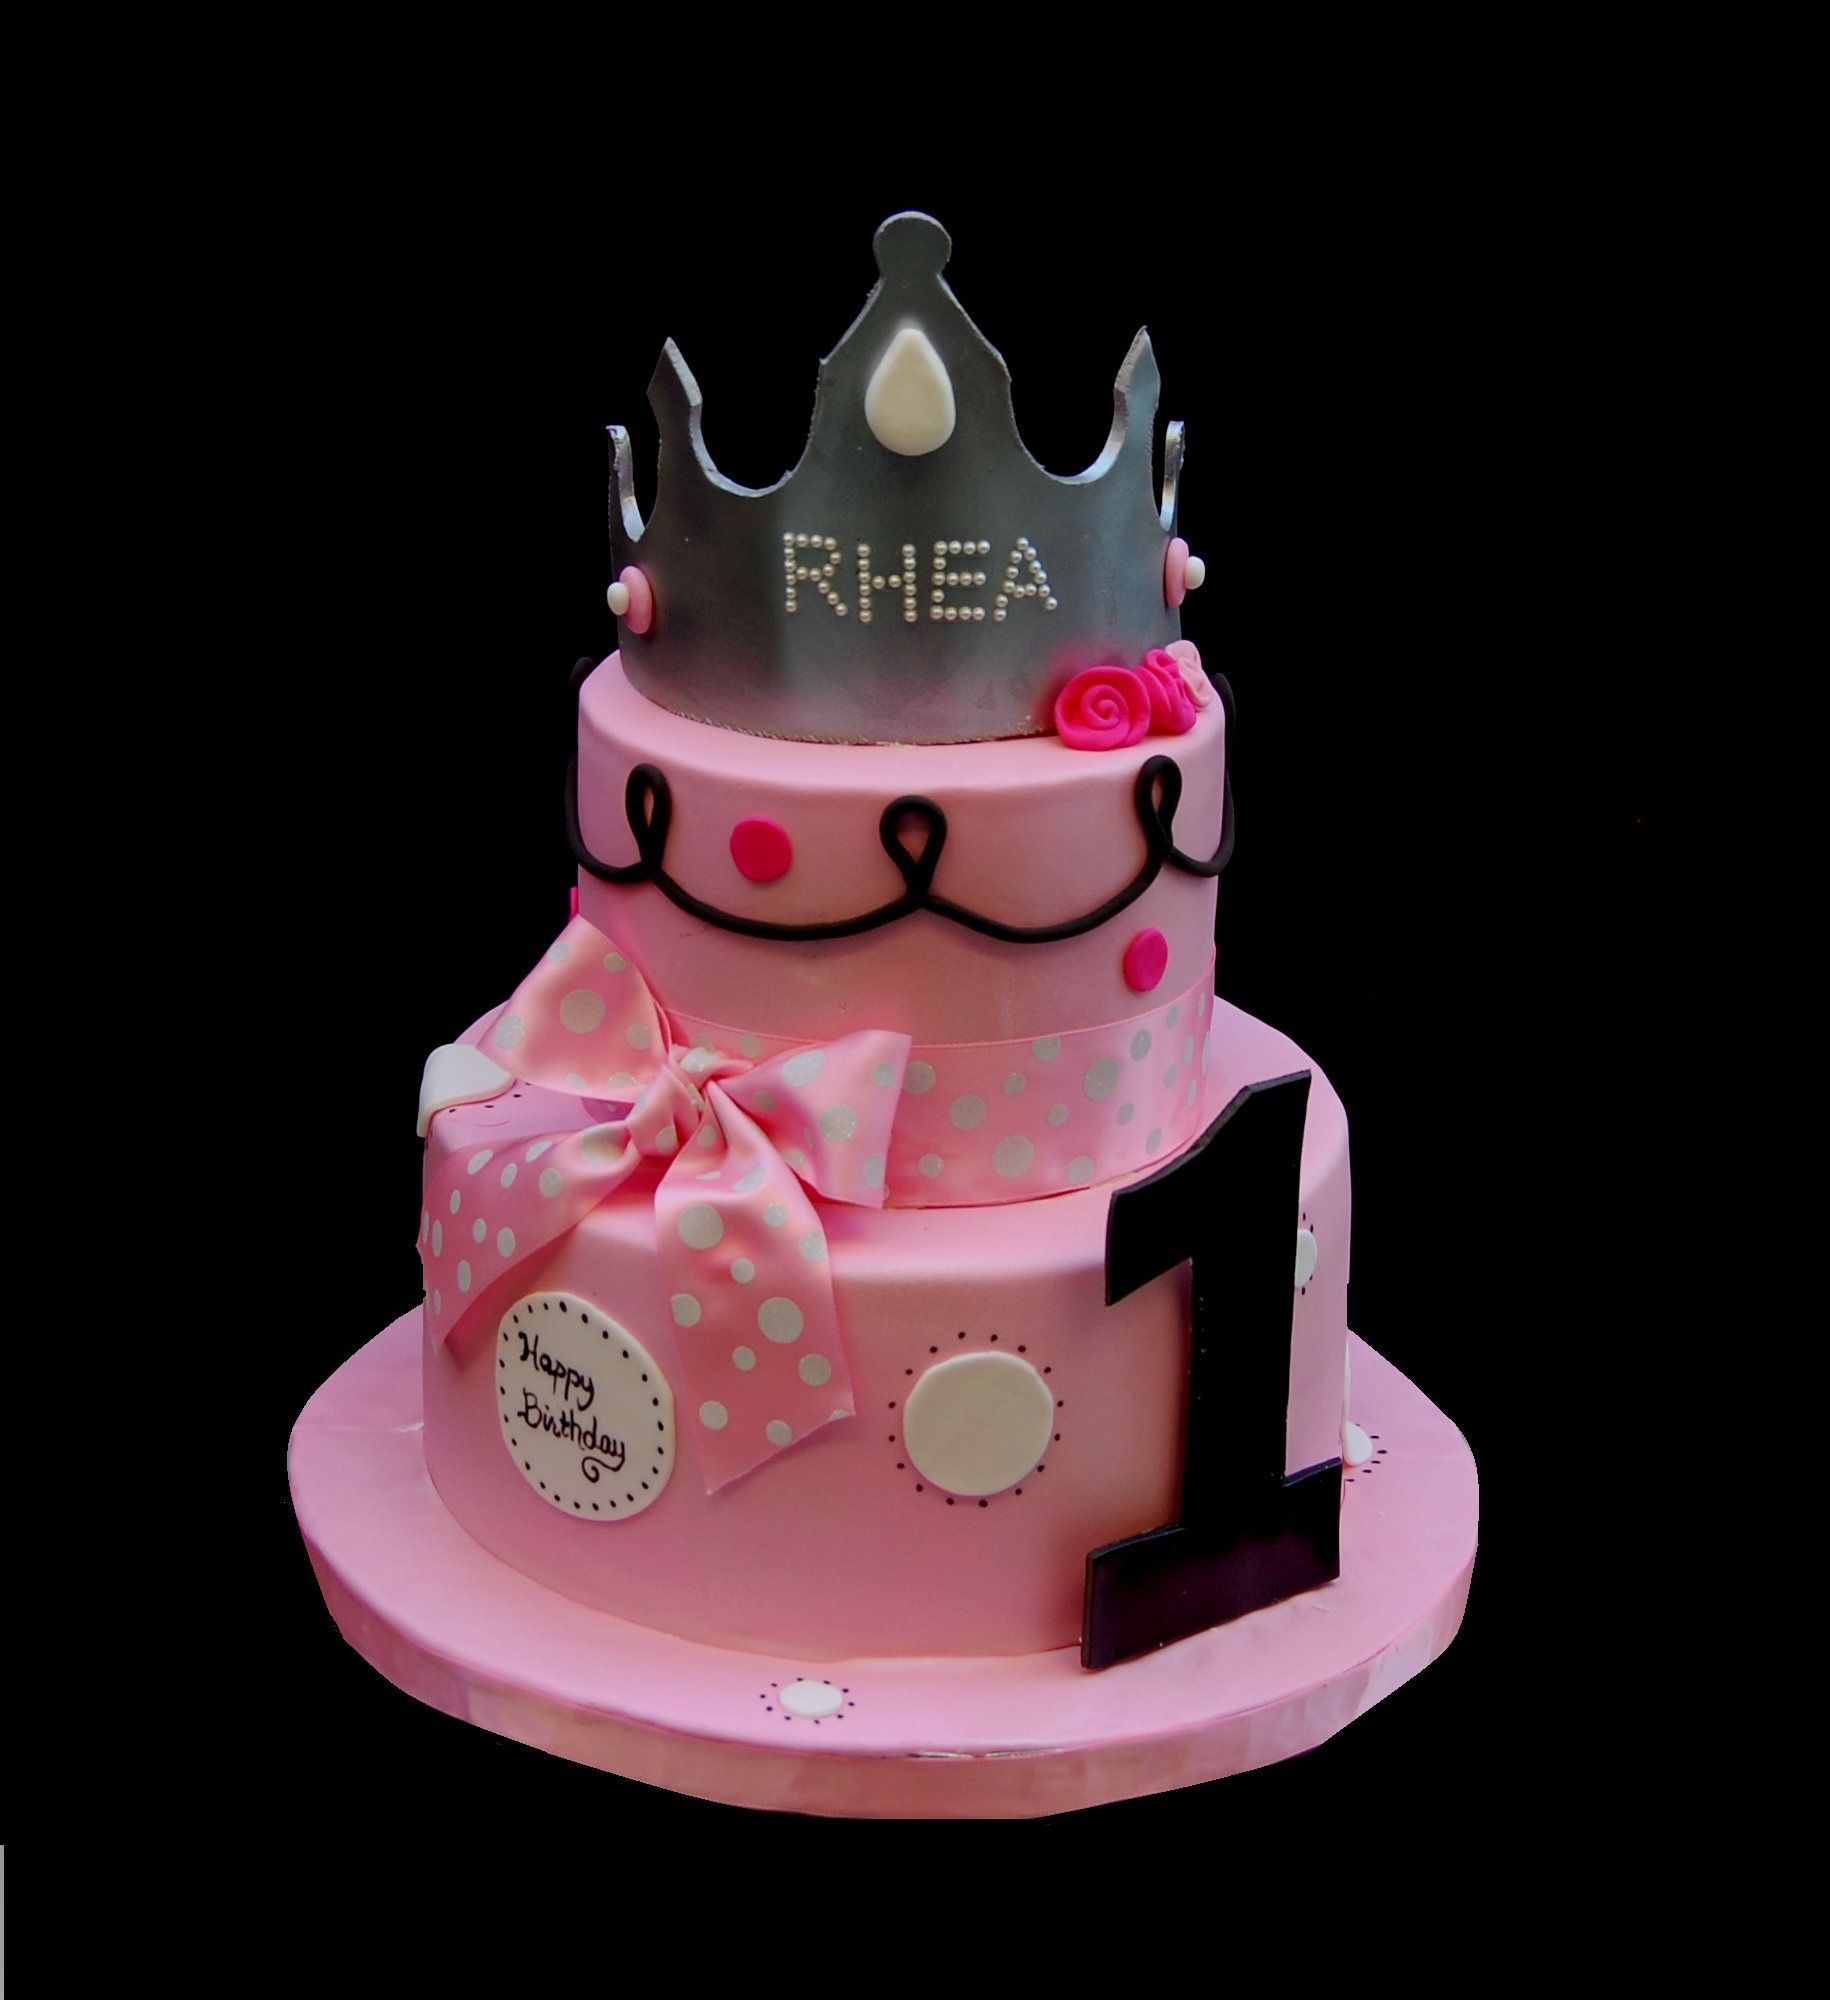 Birthday Cakes For A 2 Year Old Girl Small Birthday Cake For A